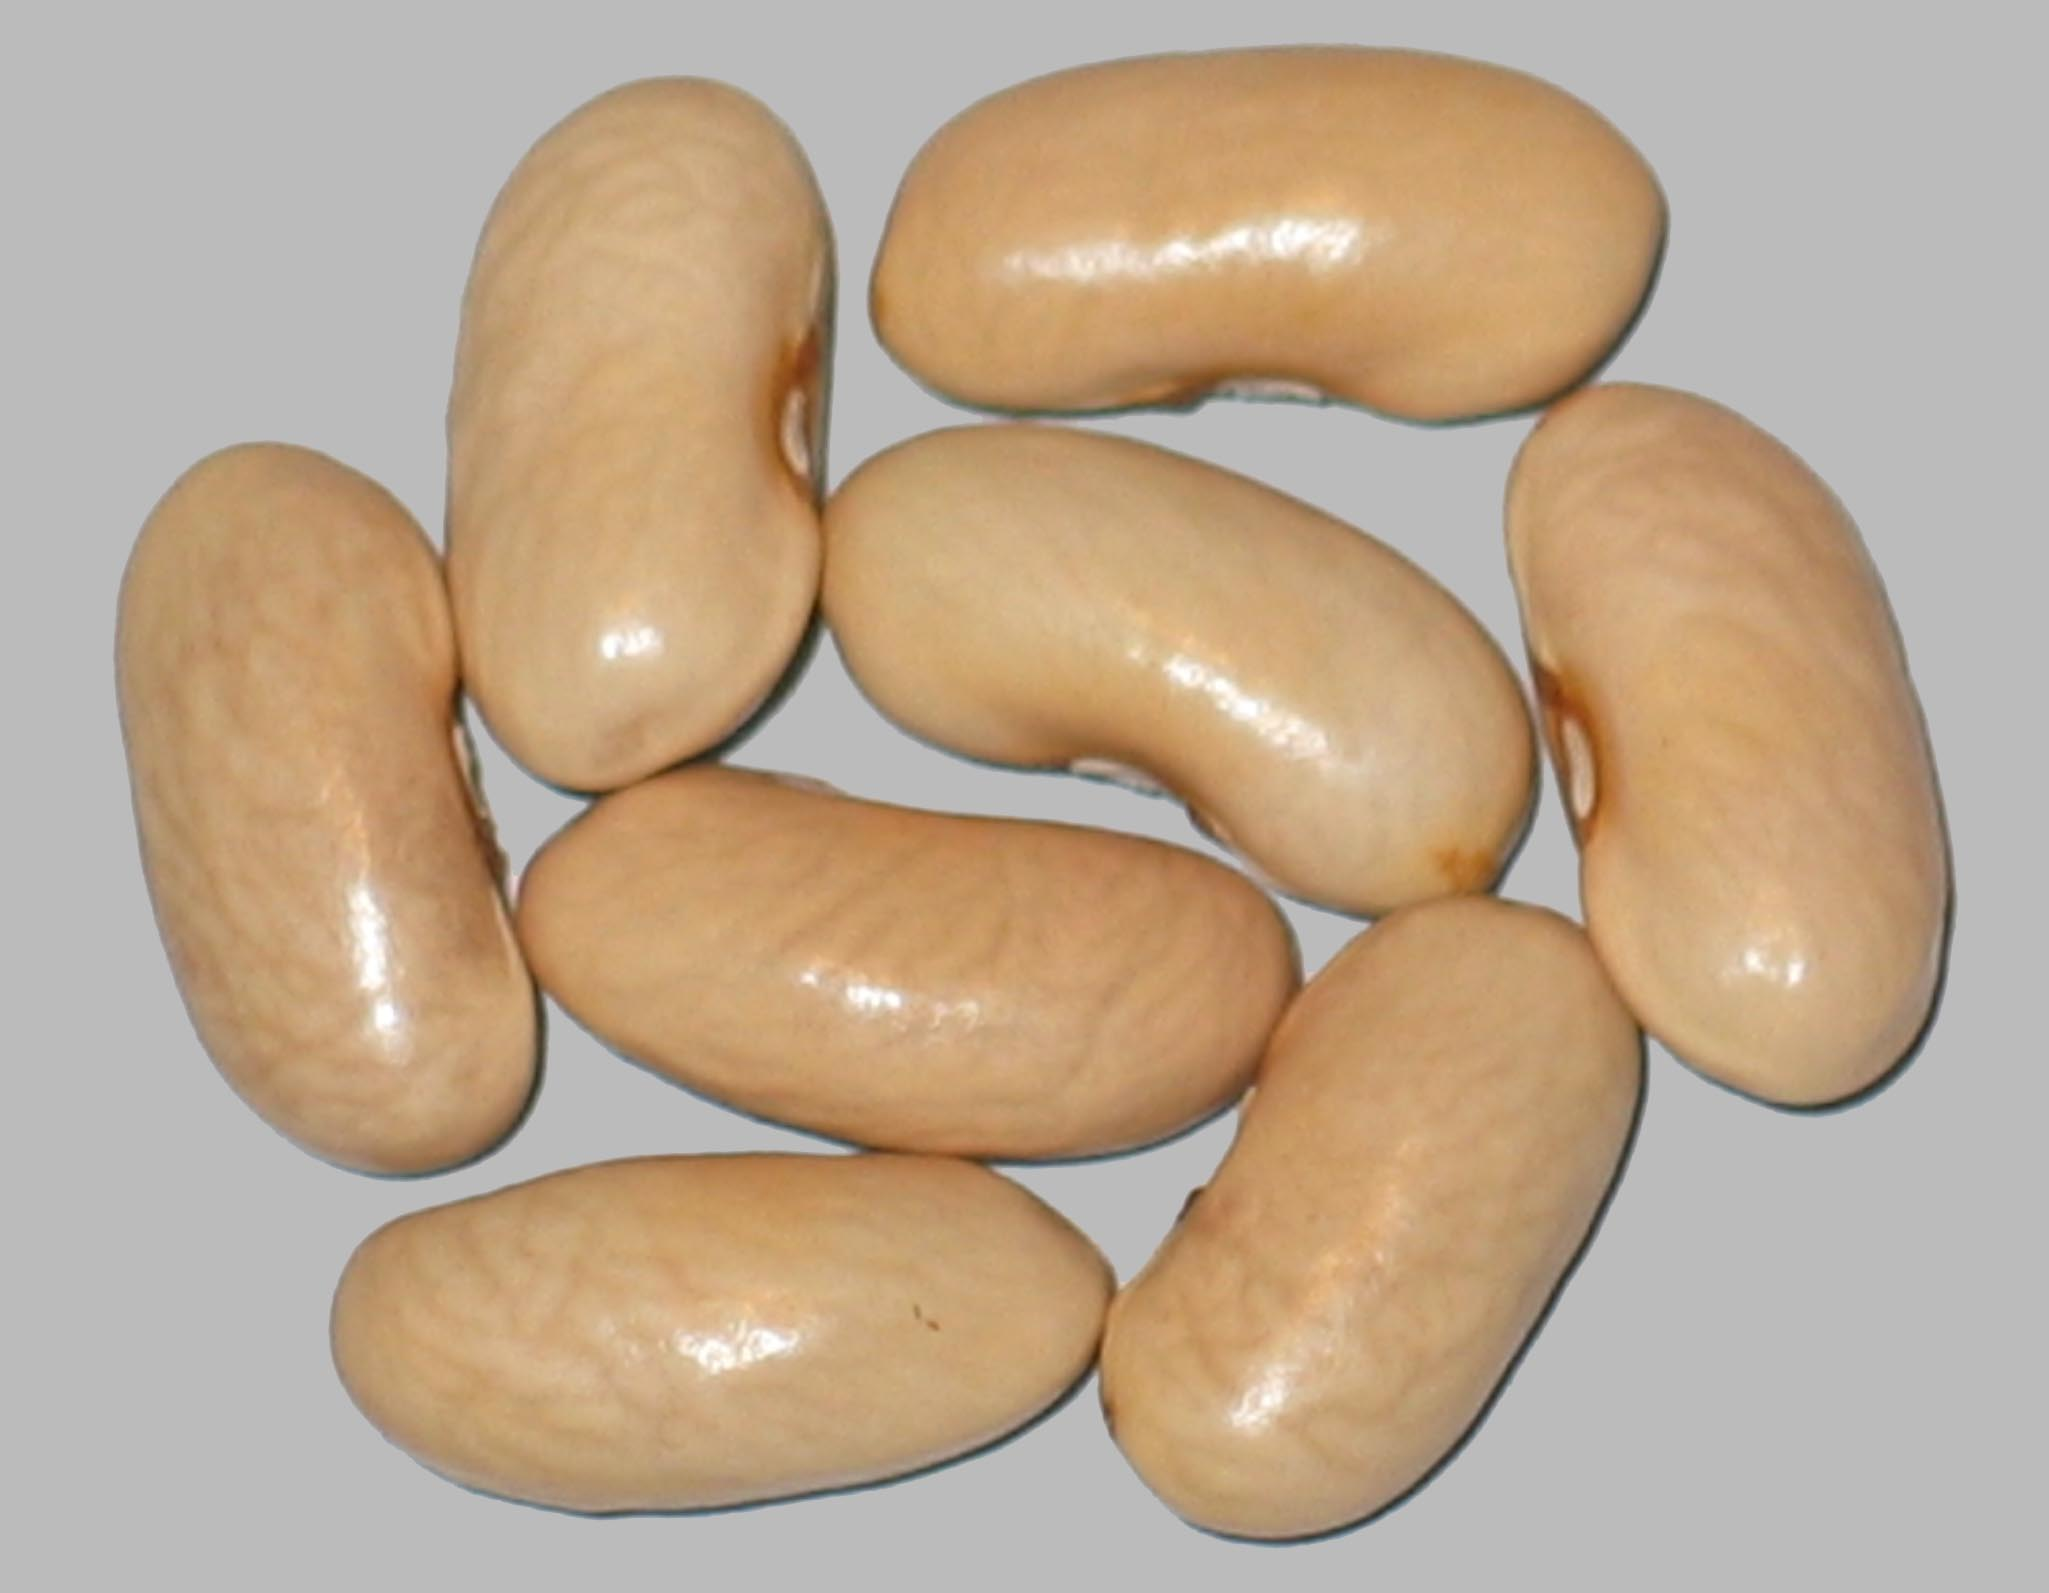 image of Long Lake Giant beans